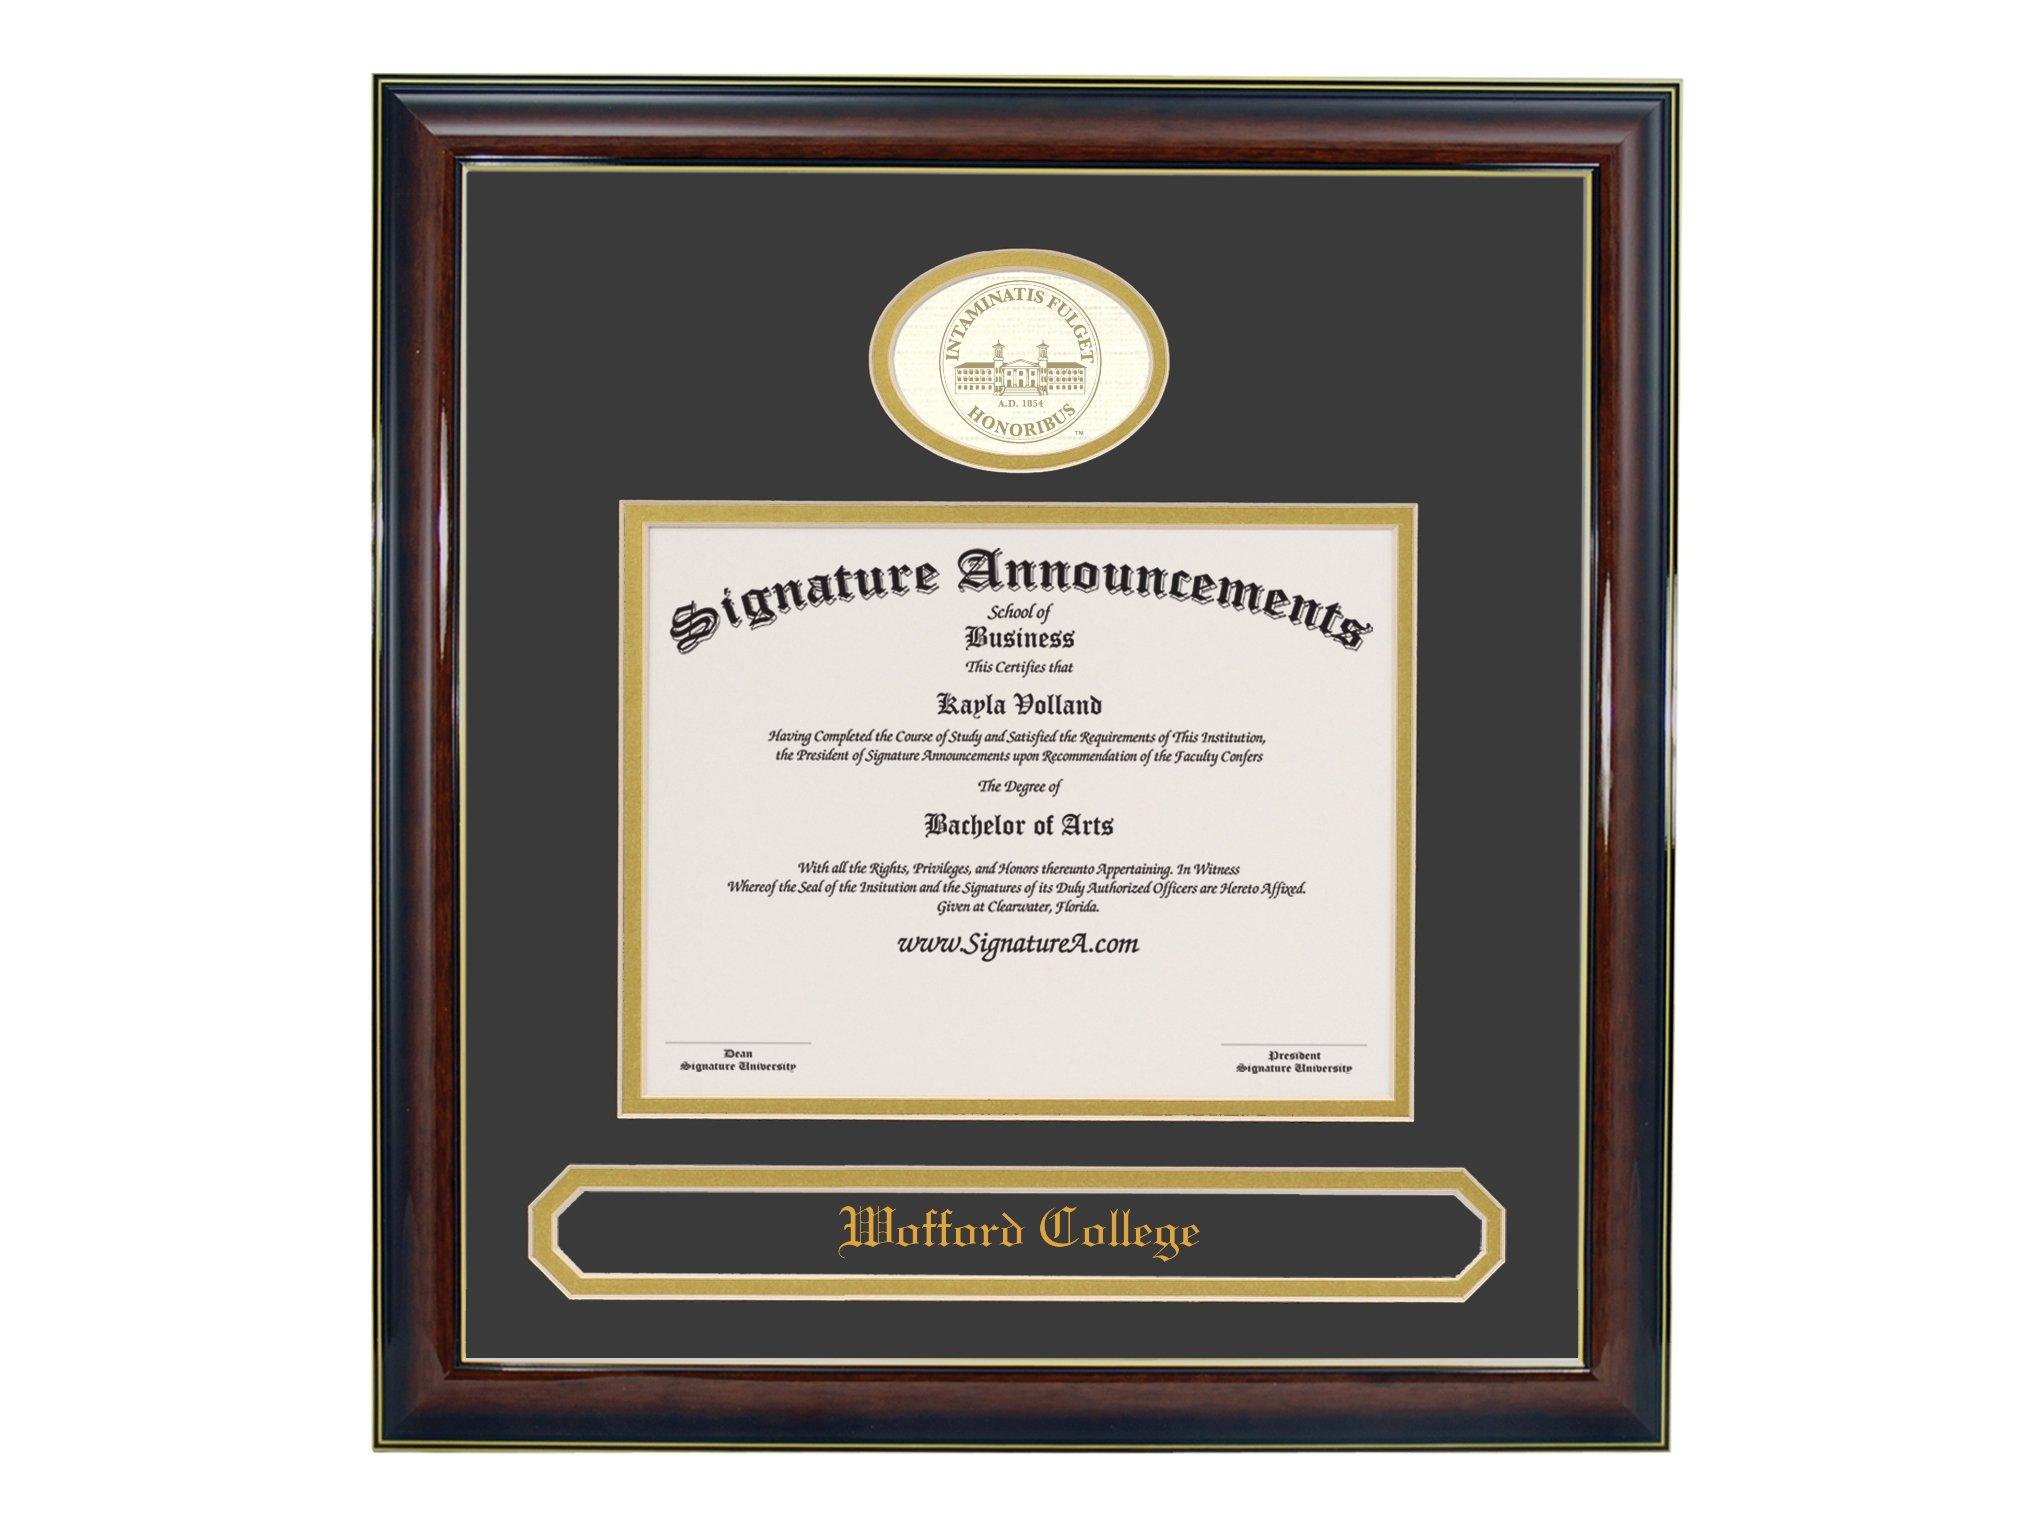 Signature Announcements Wofford-College Undergraduate, Graduate/Professional/Doctor Sculpted Foil Seal & Name Diploma Frame, 16'' x 16'', Gold Accent Gloss Mahogany